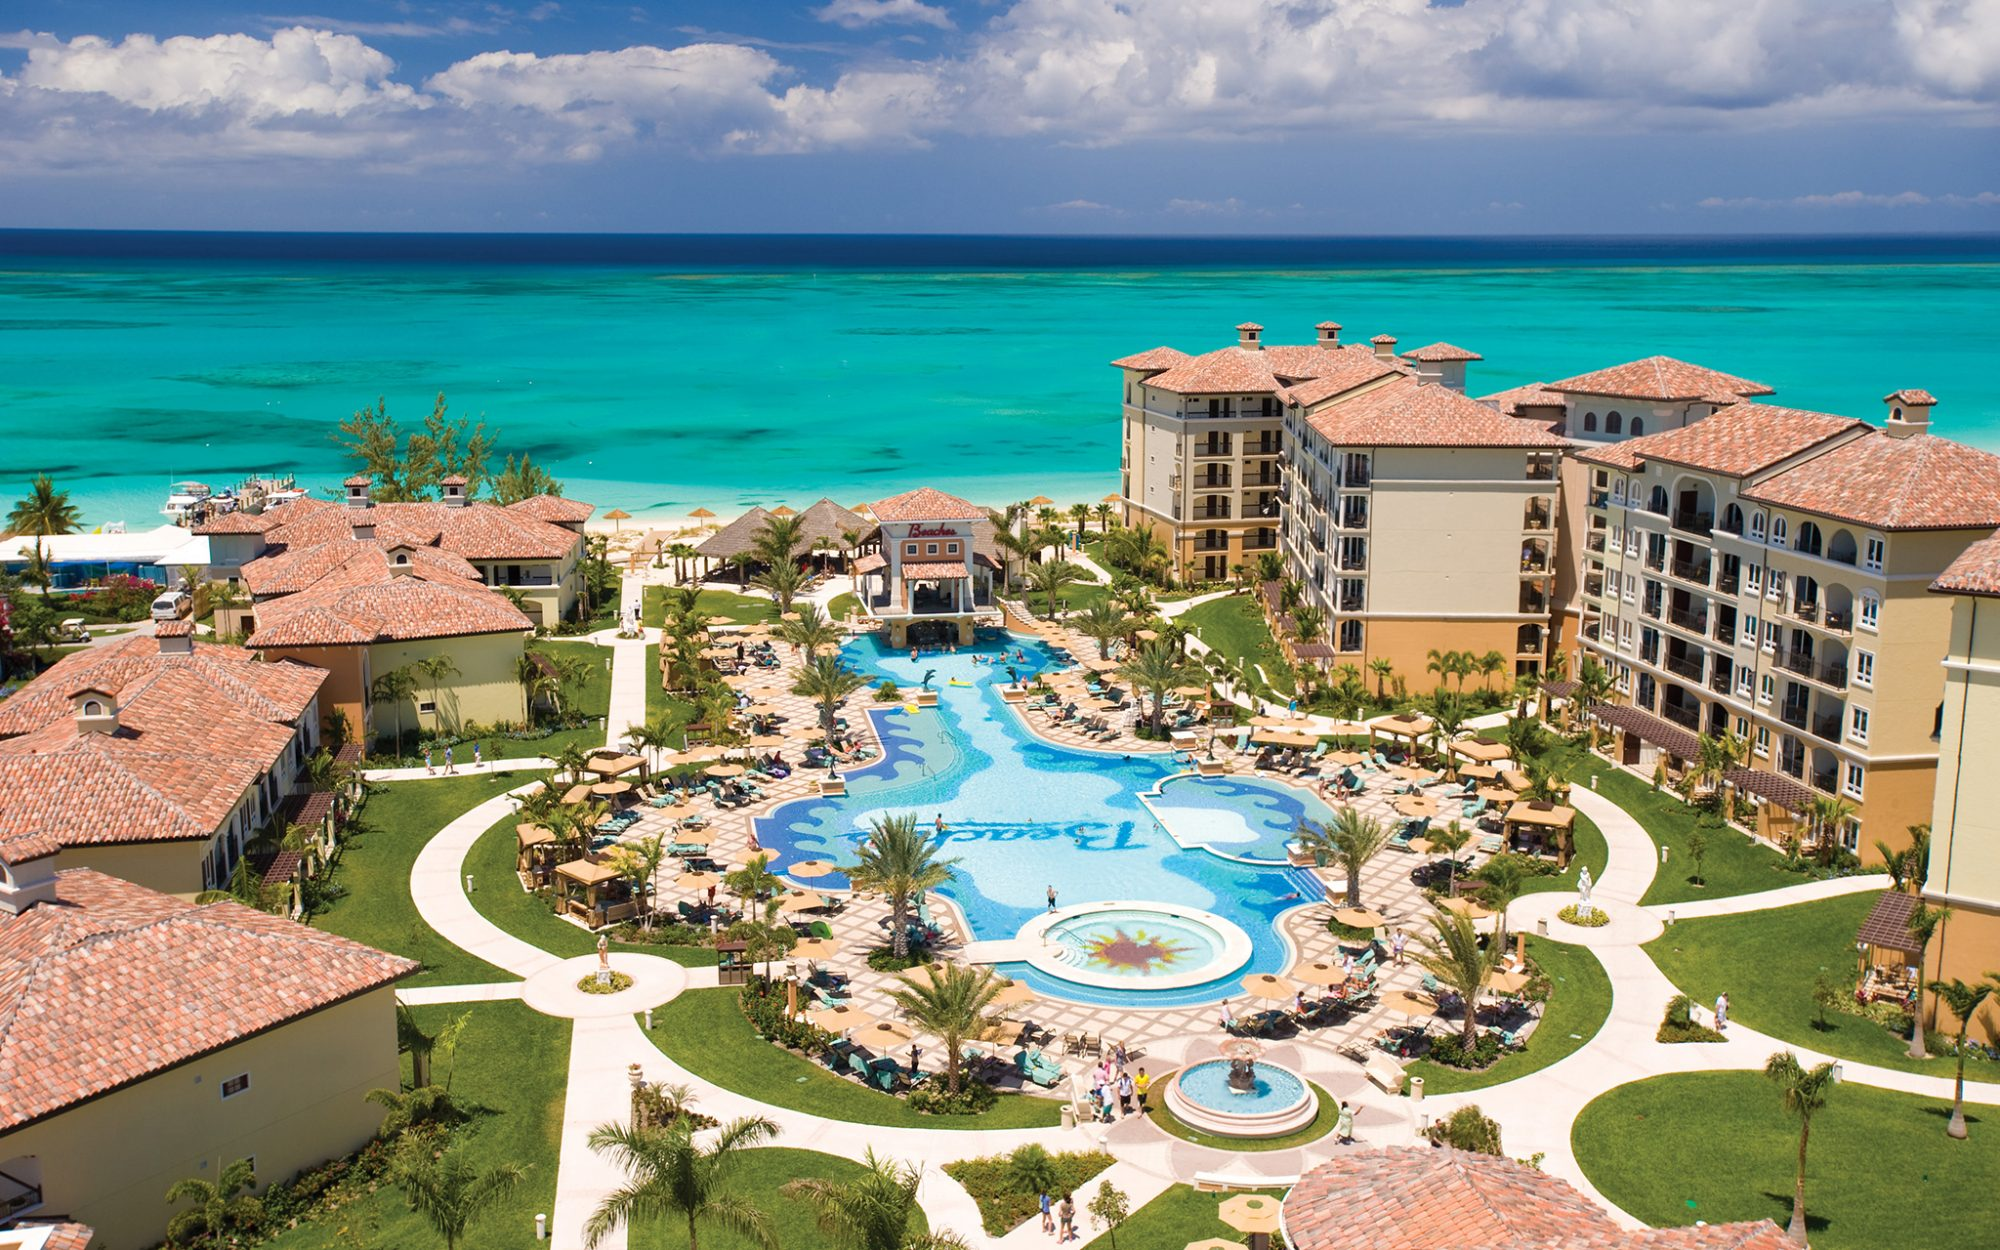 Best Family Beach Hotels: No. 2 Beaches Turks & Caicos Resort Villages & Spa